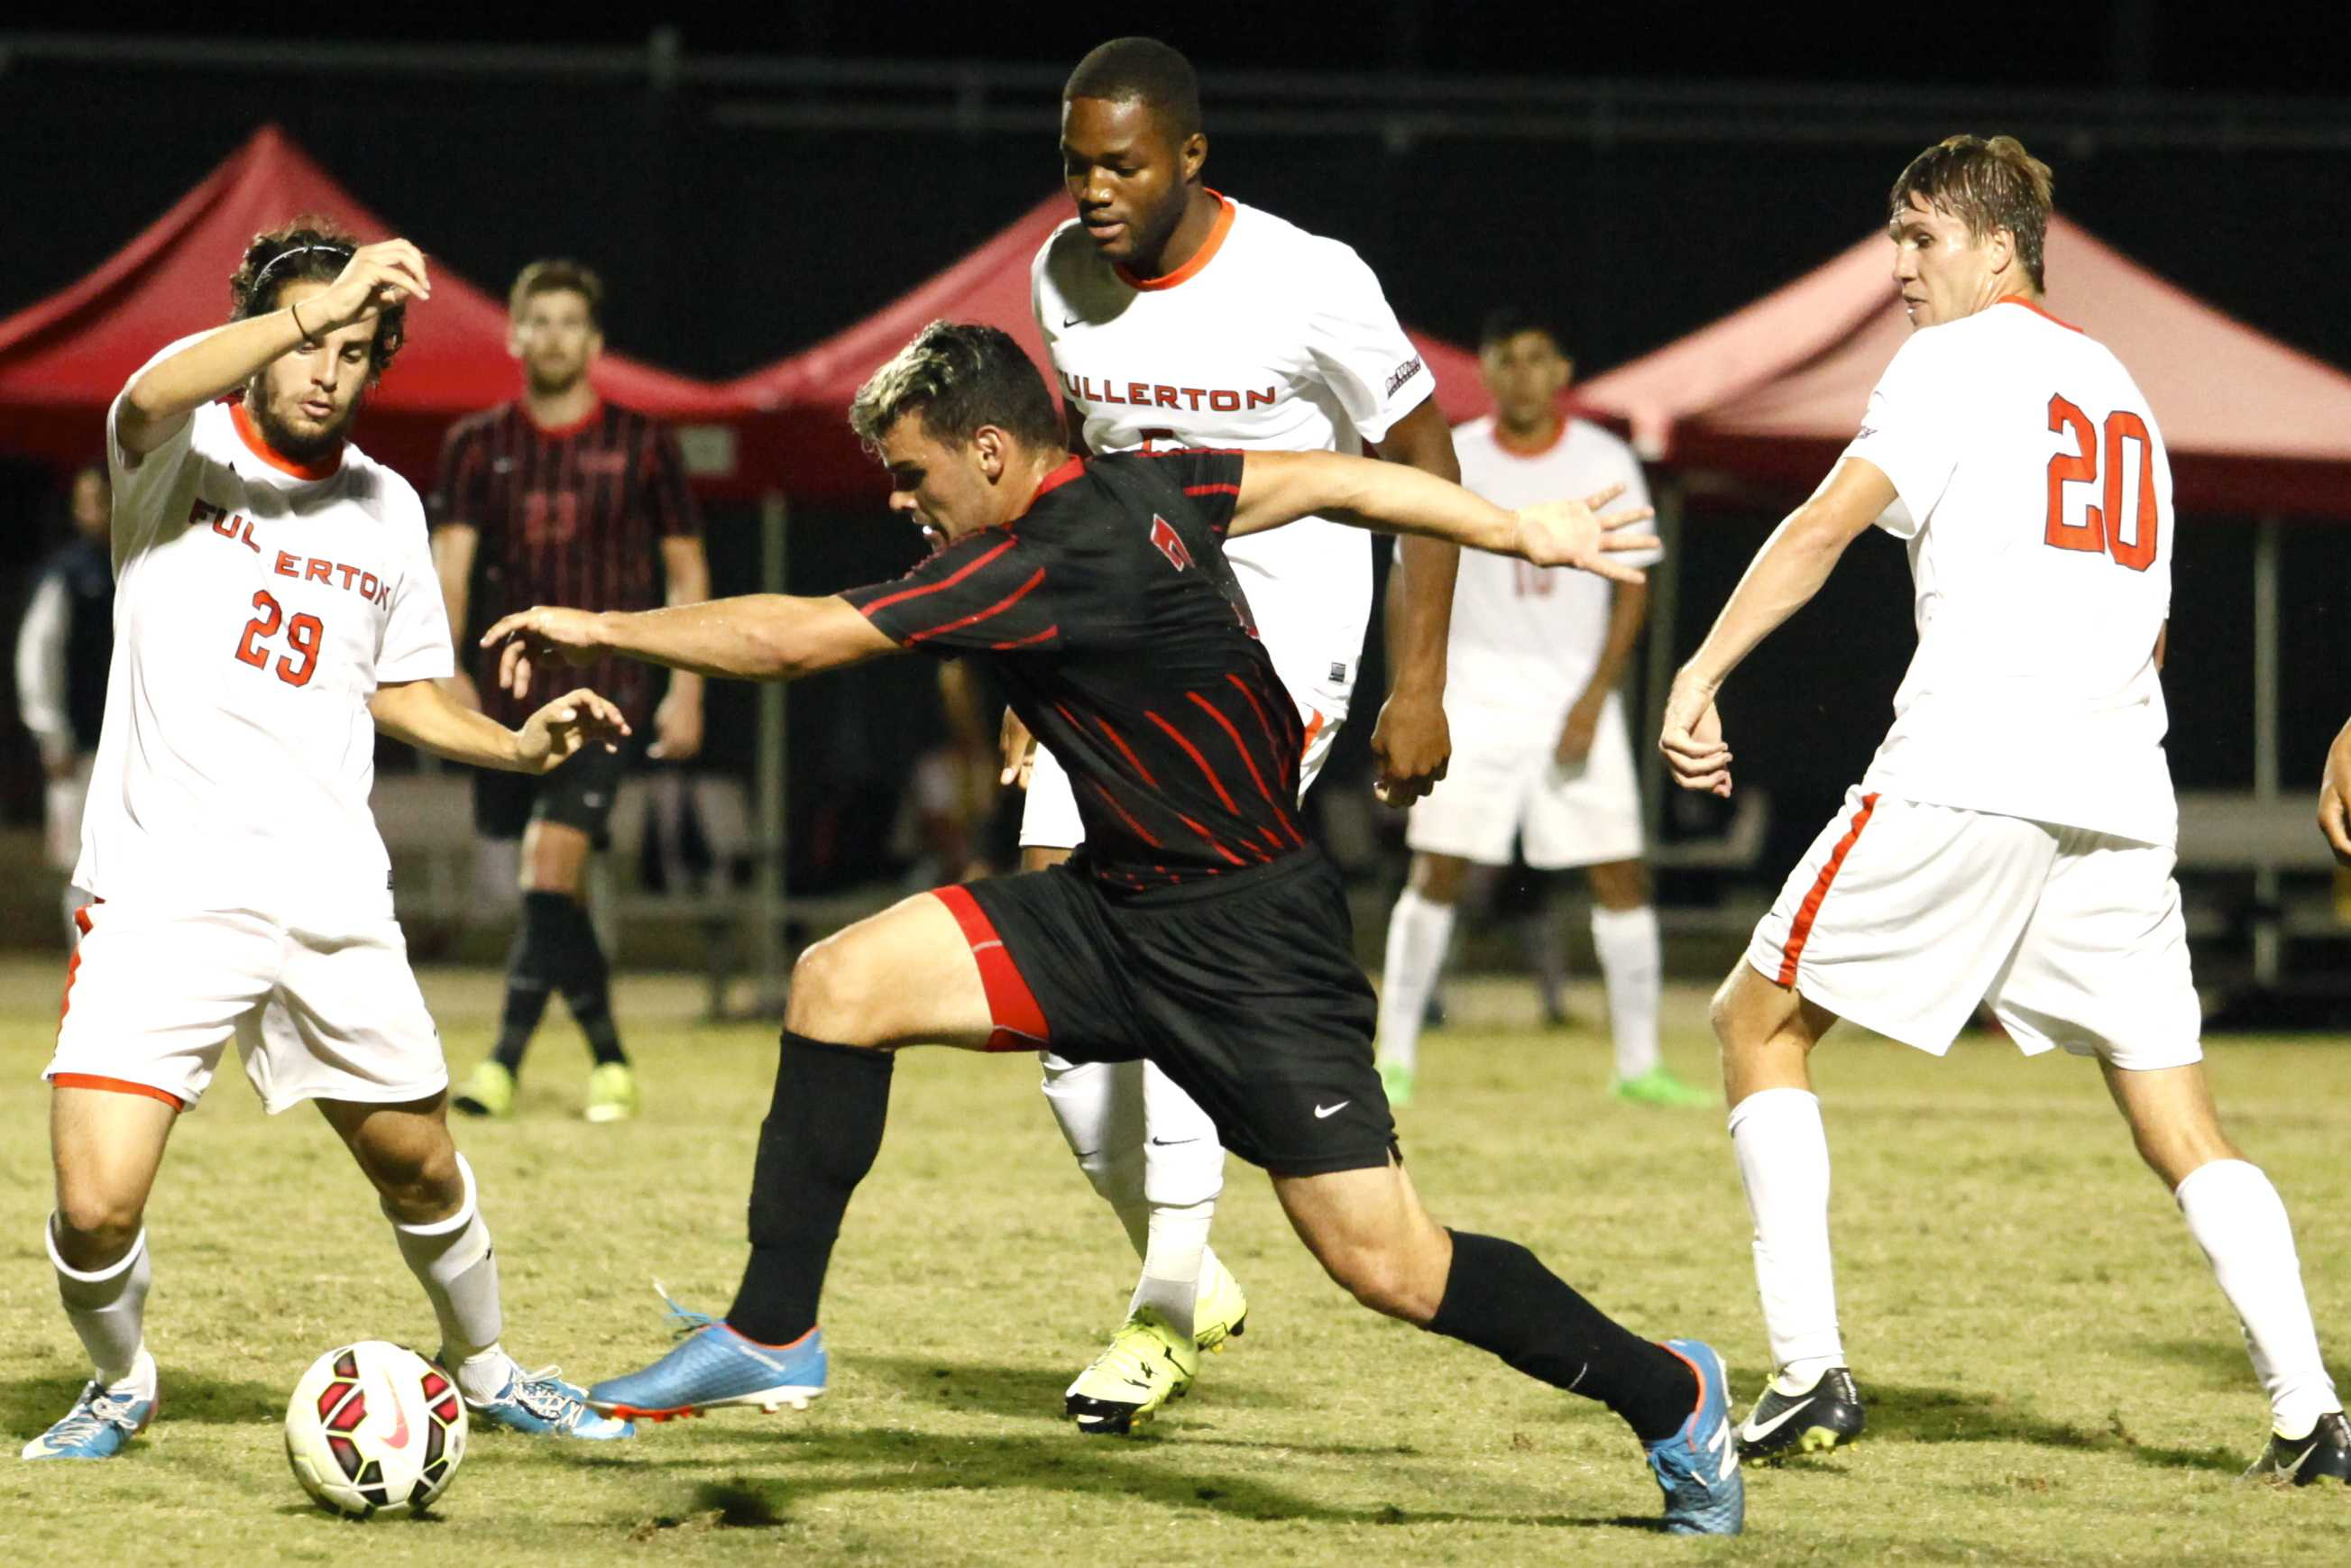 CSUN soccer player takes the ball from Fullerton player